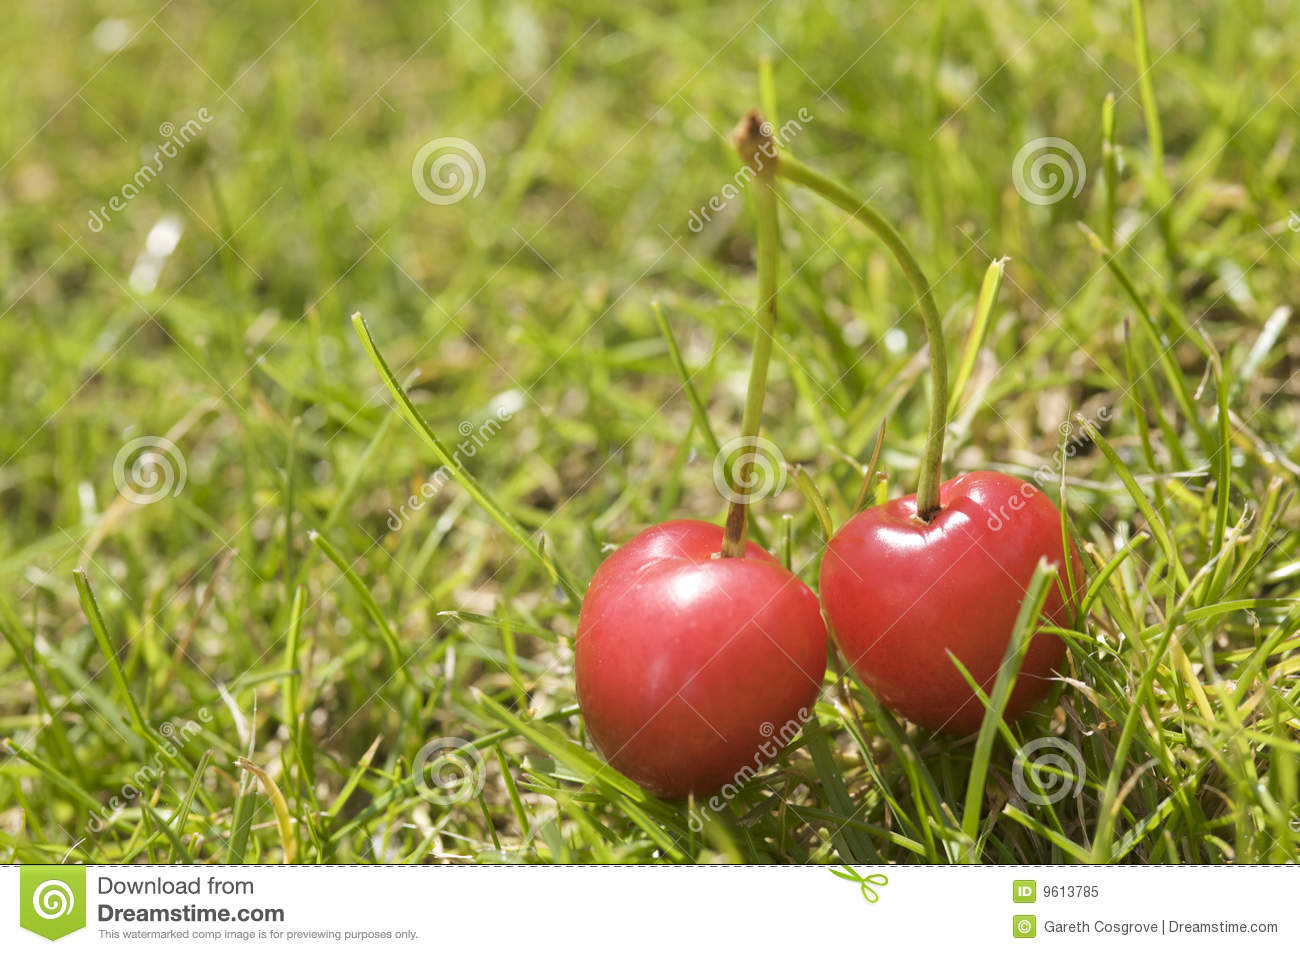 Two cherries in grass